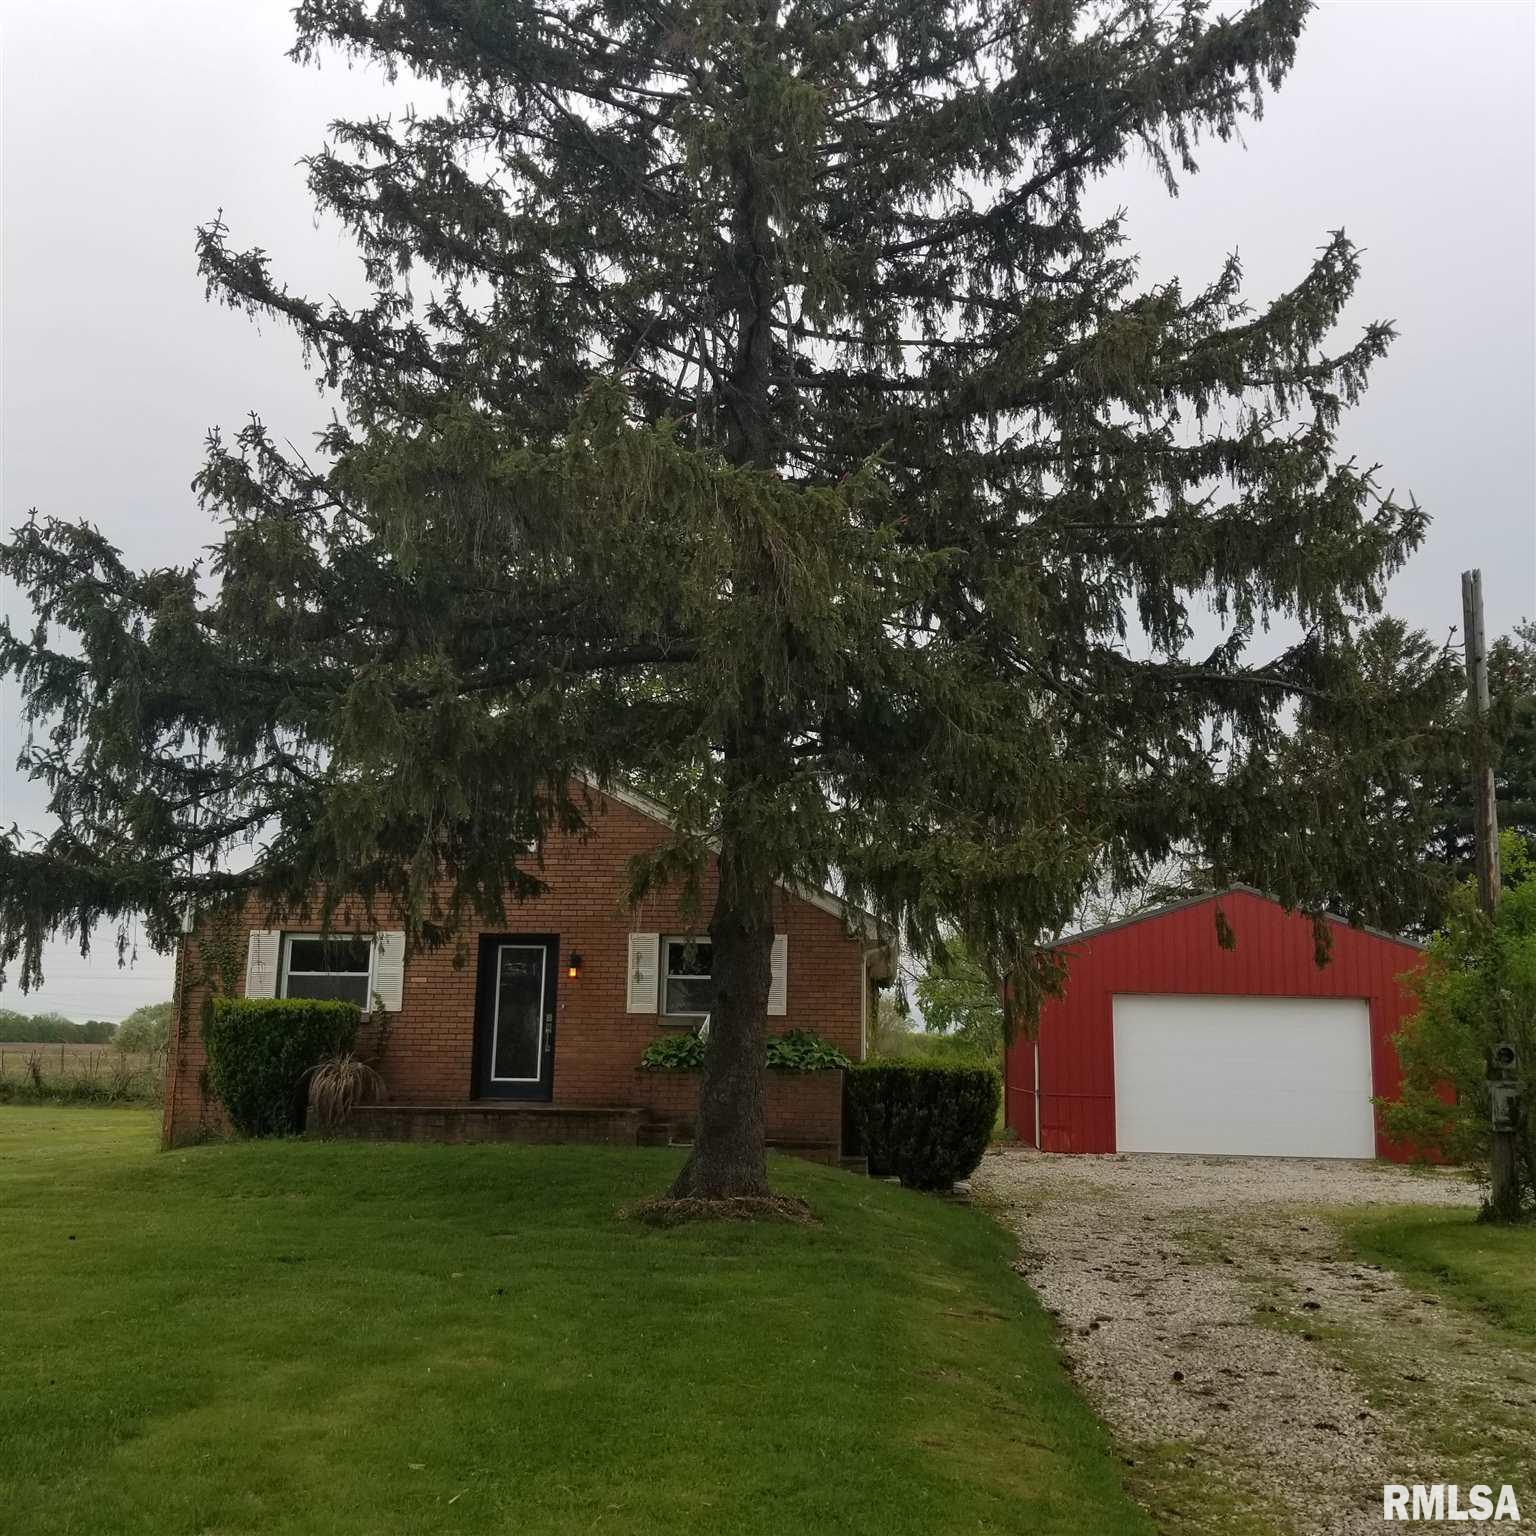 1313 N TAYLOR Property Photo - Hanna City, IL real estate listing